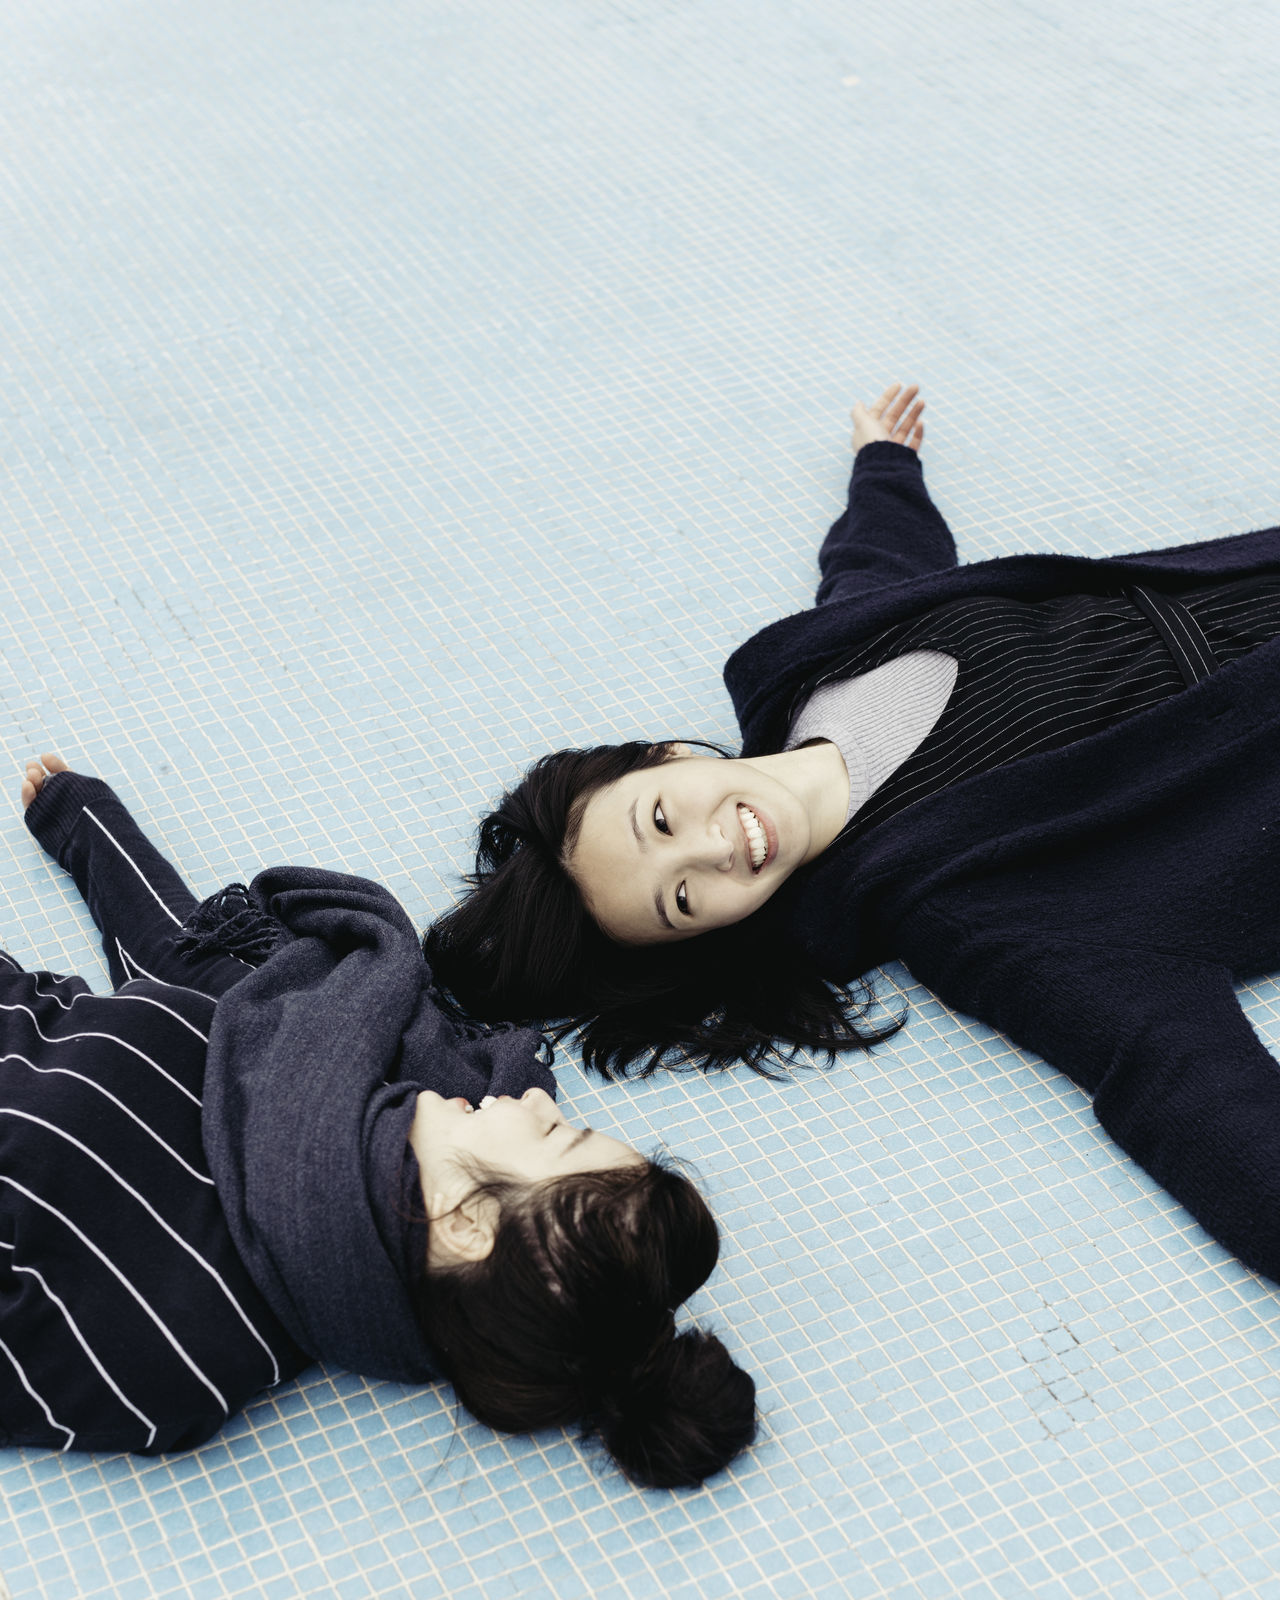 Beautiful stock photos of freundschaft, lying down, lying on back, one person, one woman only